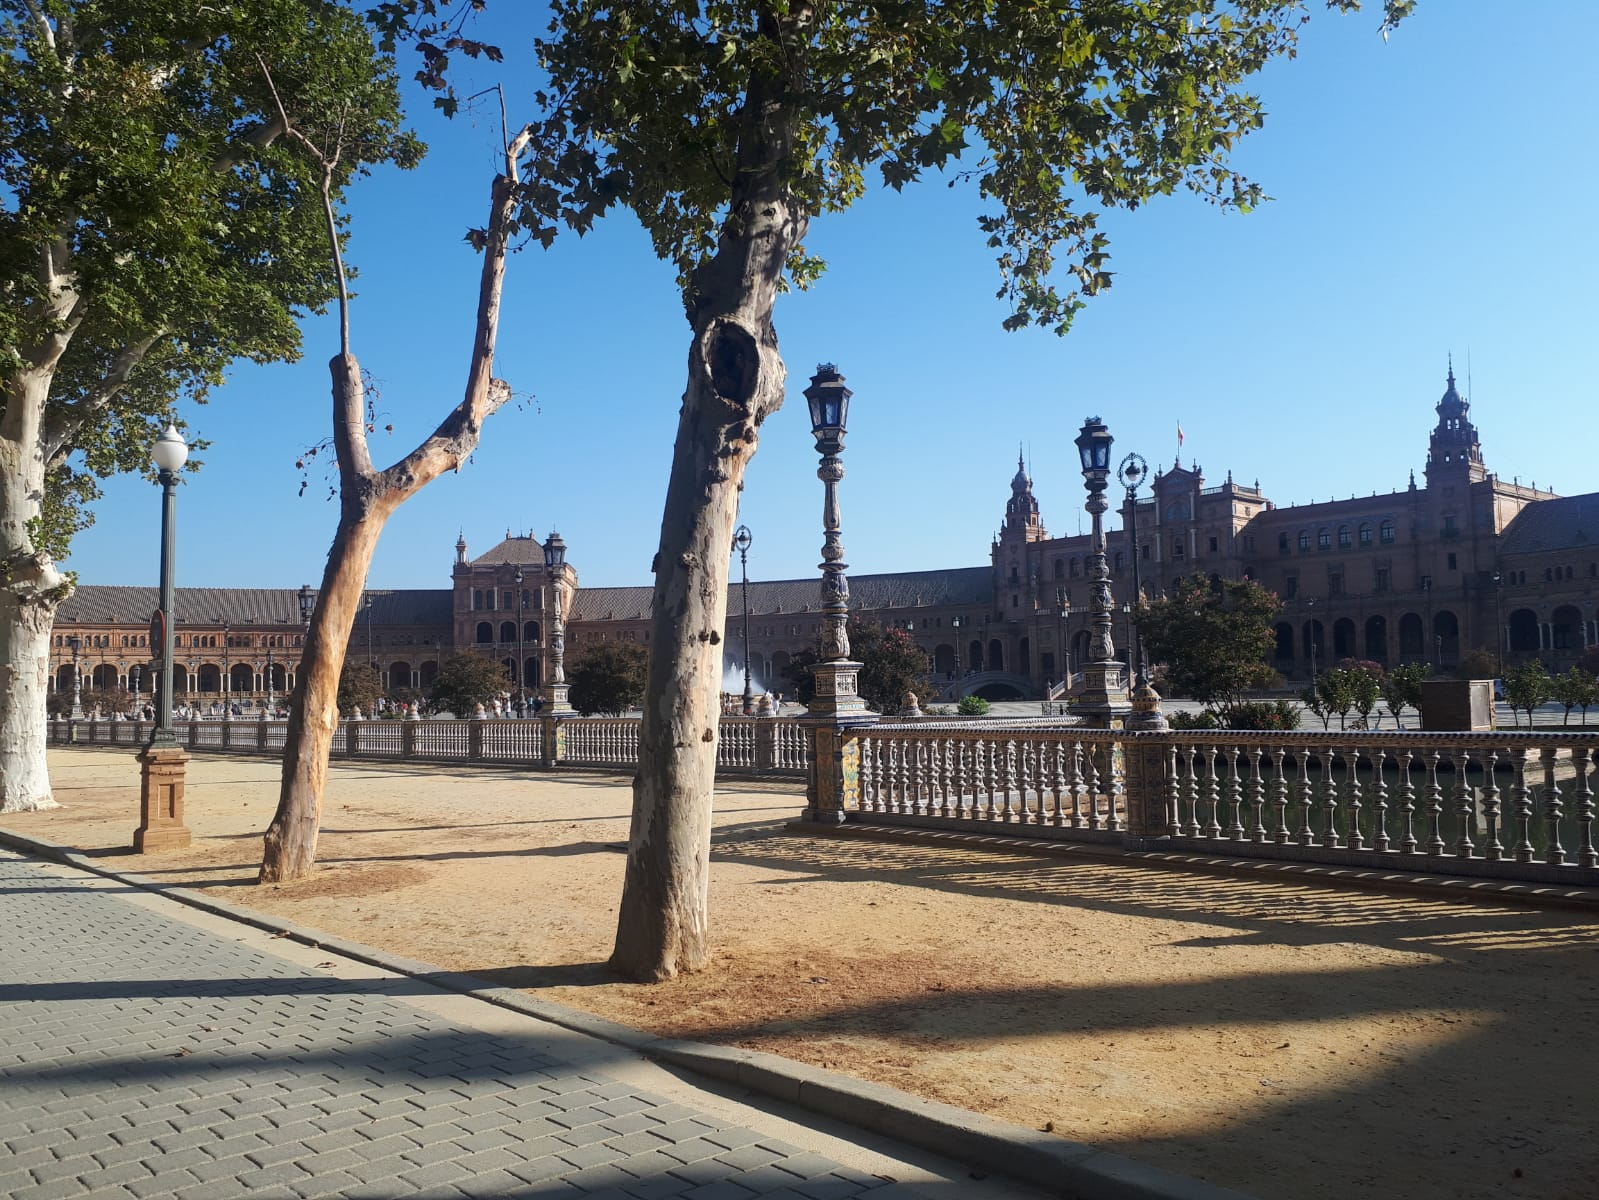 Early morning equals no crowds at Plaza de España